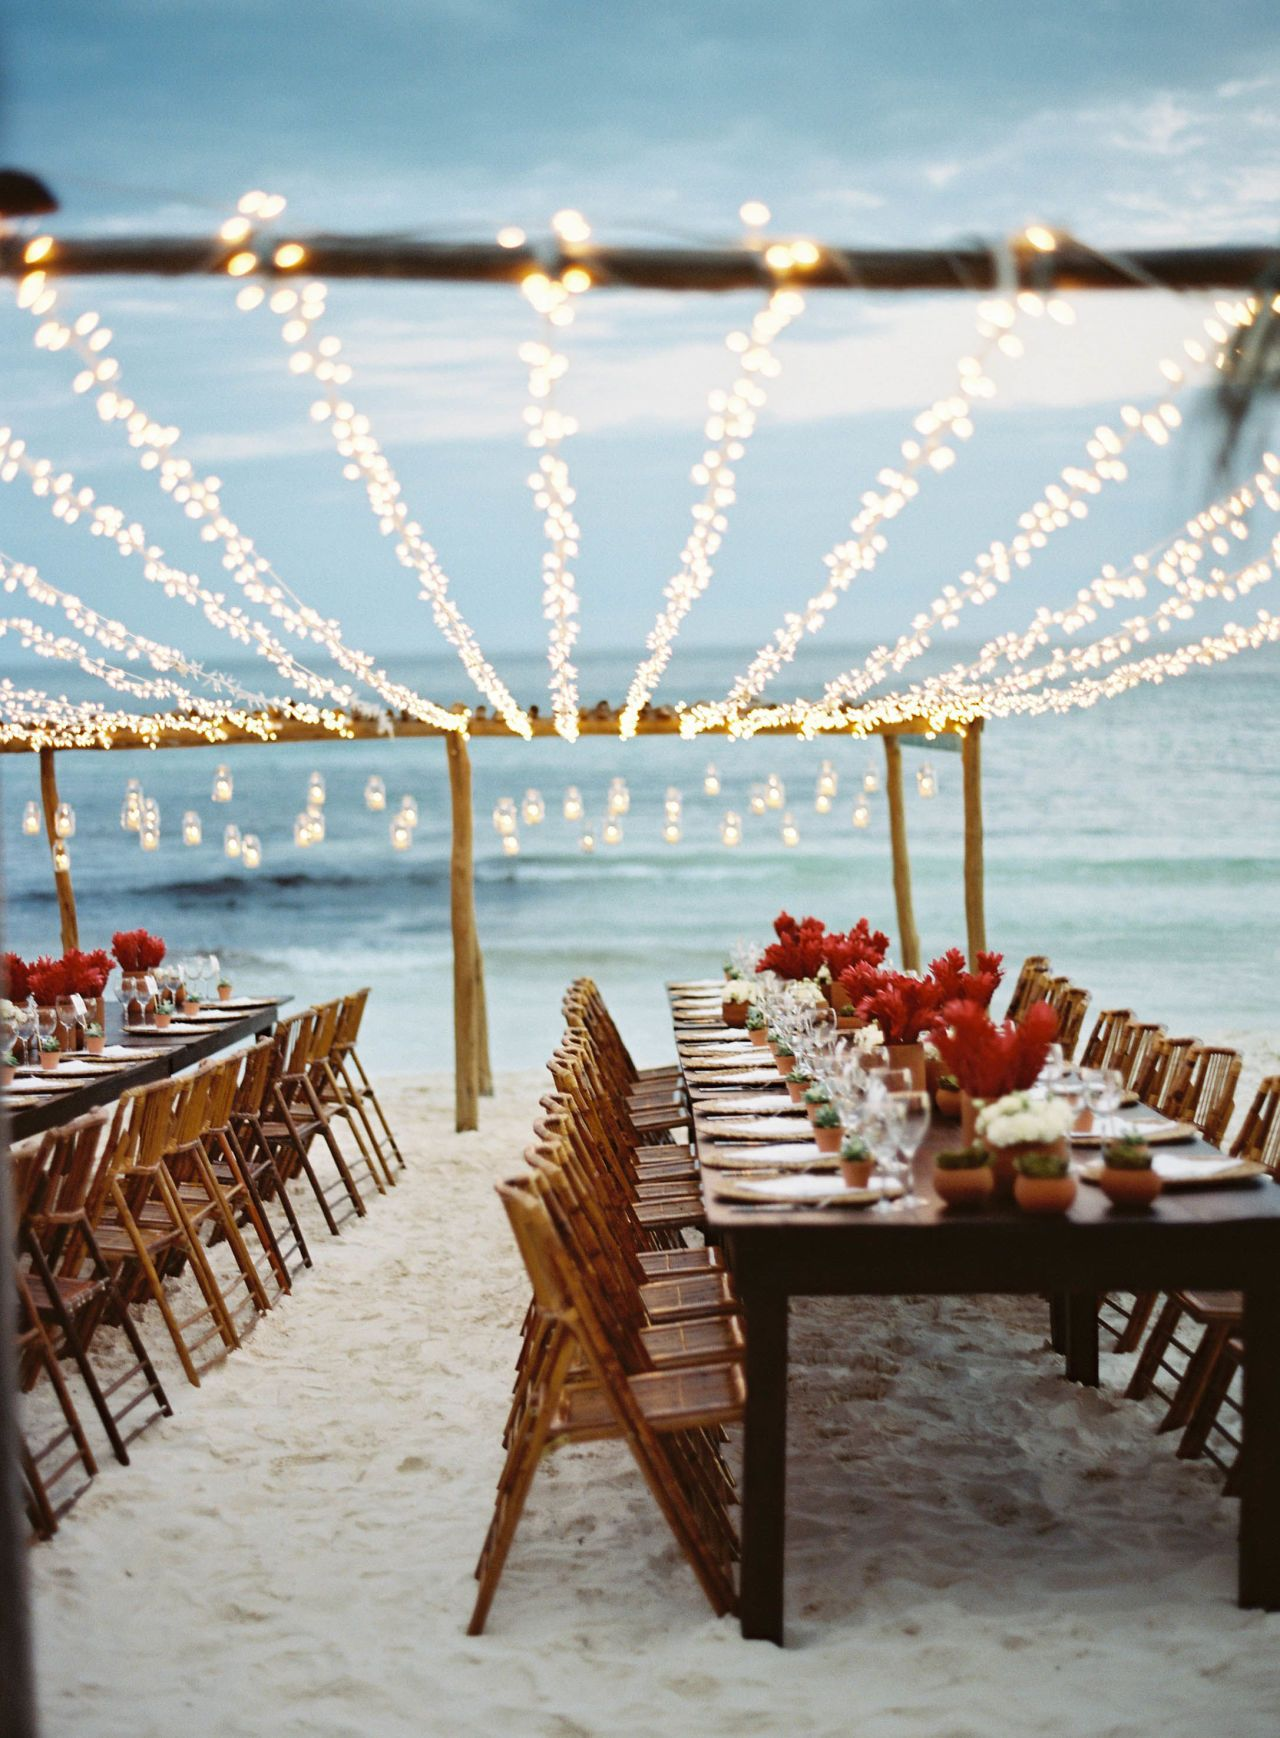 The Most Idyllic Beach Wedding | Weddings | Beach wedding ...